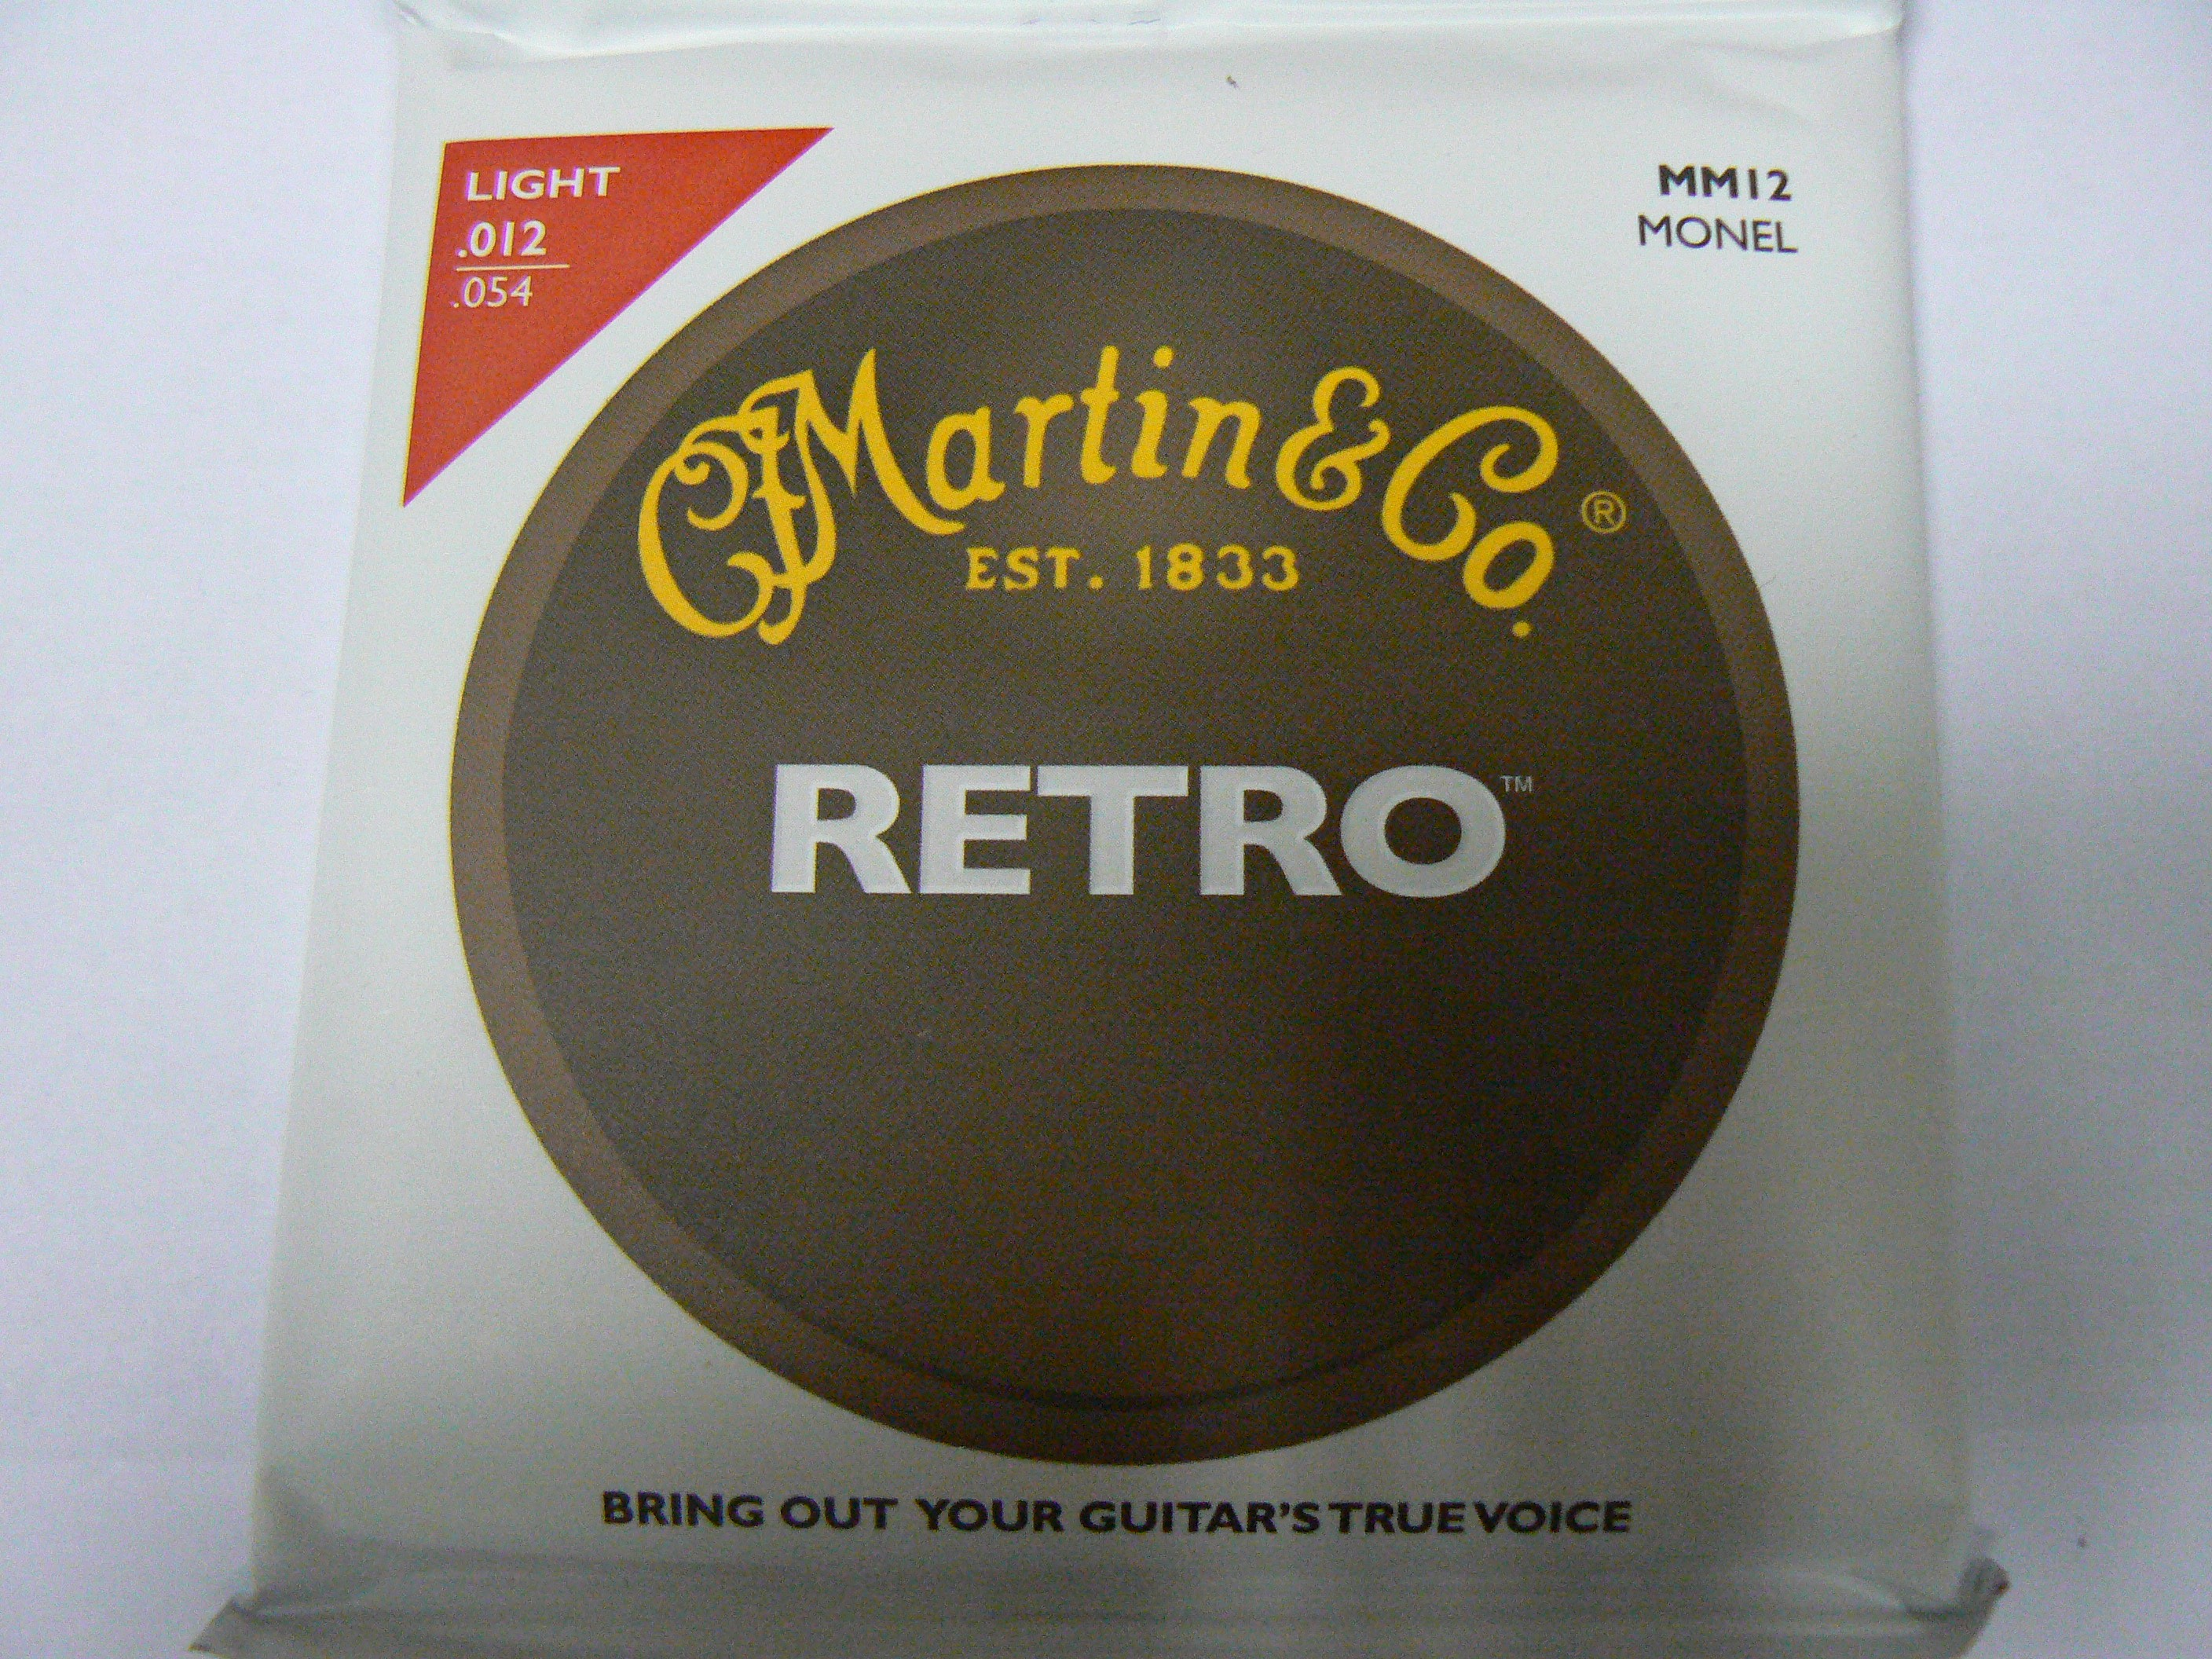 MARTIN MM12 Retro Acoustic Guitar Strings - nikl .012-.054